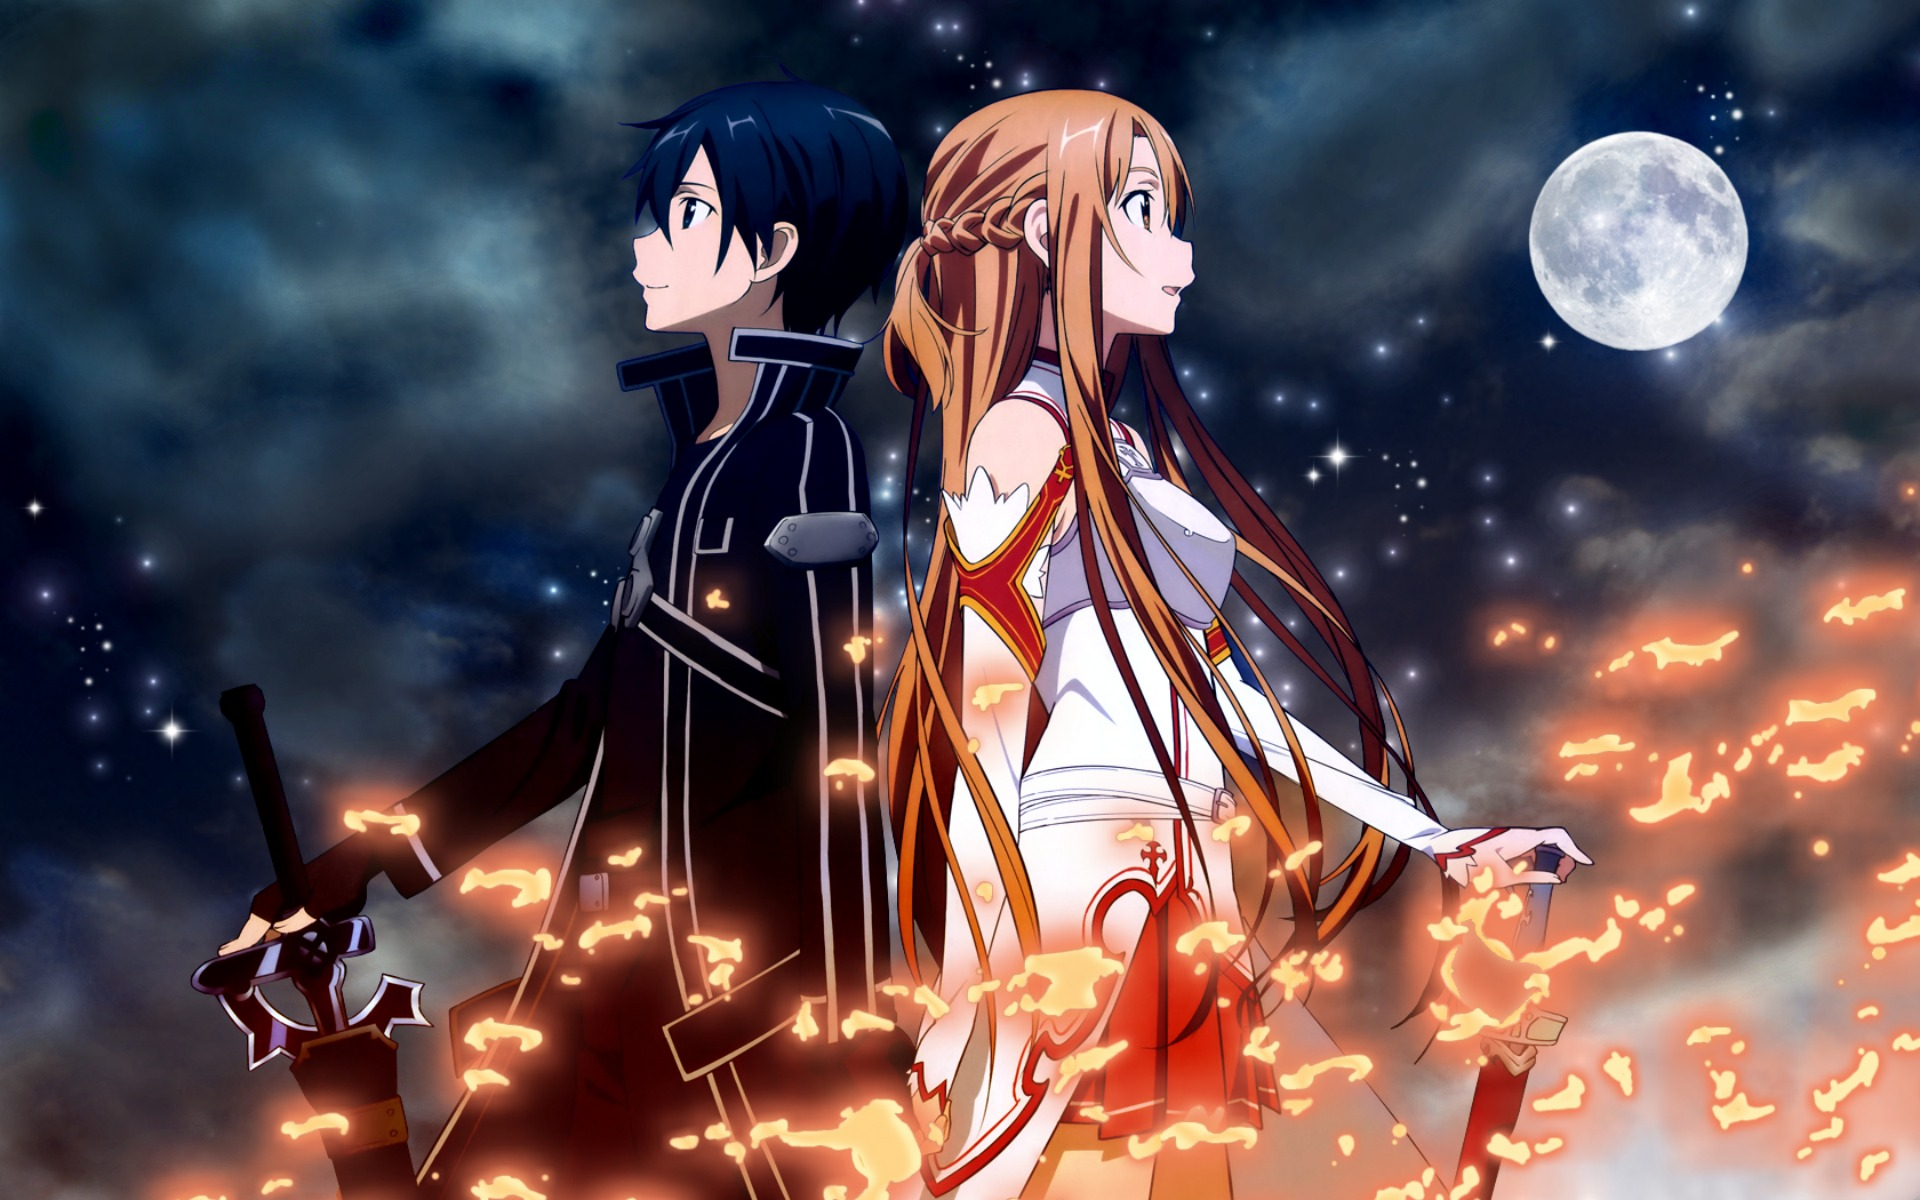 Sword Art Online images SAO HD wallpaper and background photos 1920x1200